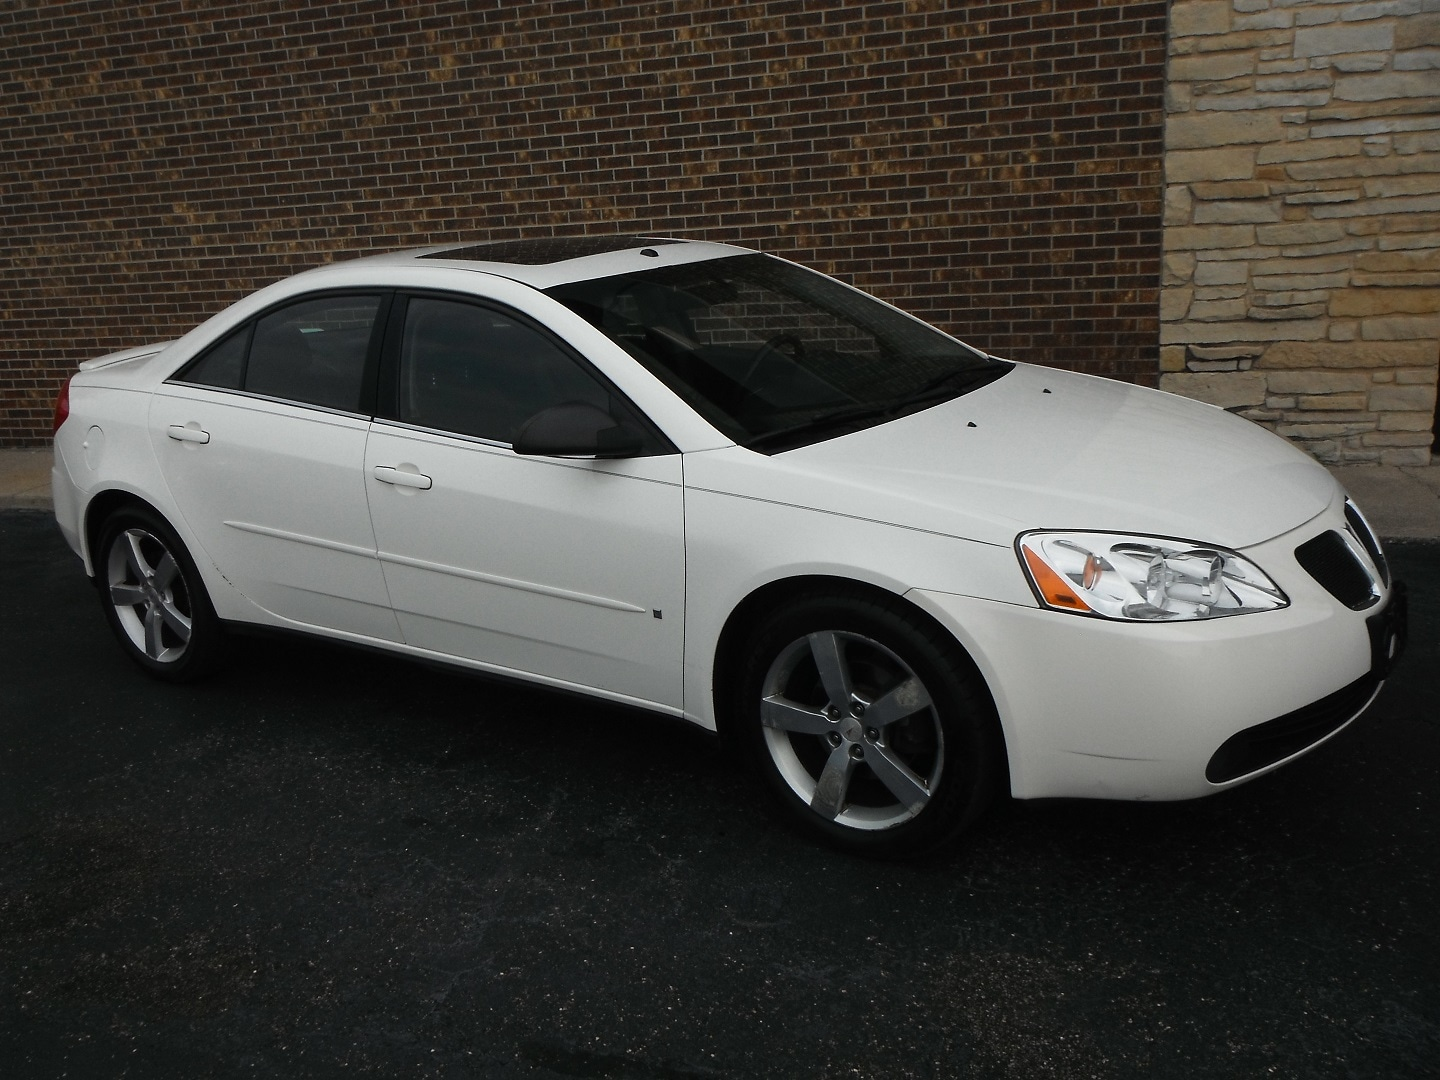 Used 2006 Pontiac G6 Gtp For Sale Woodstock Il